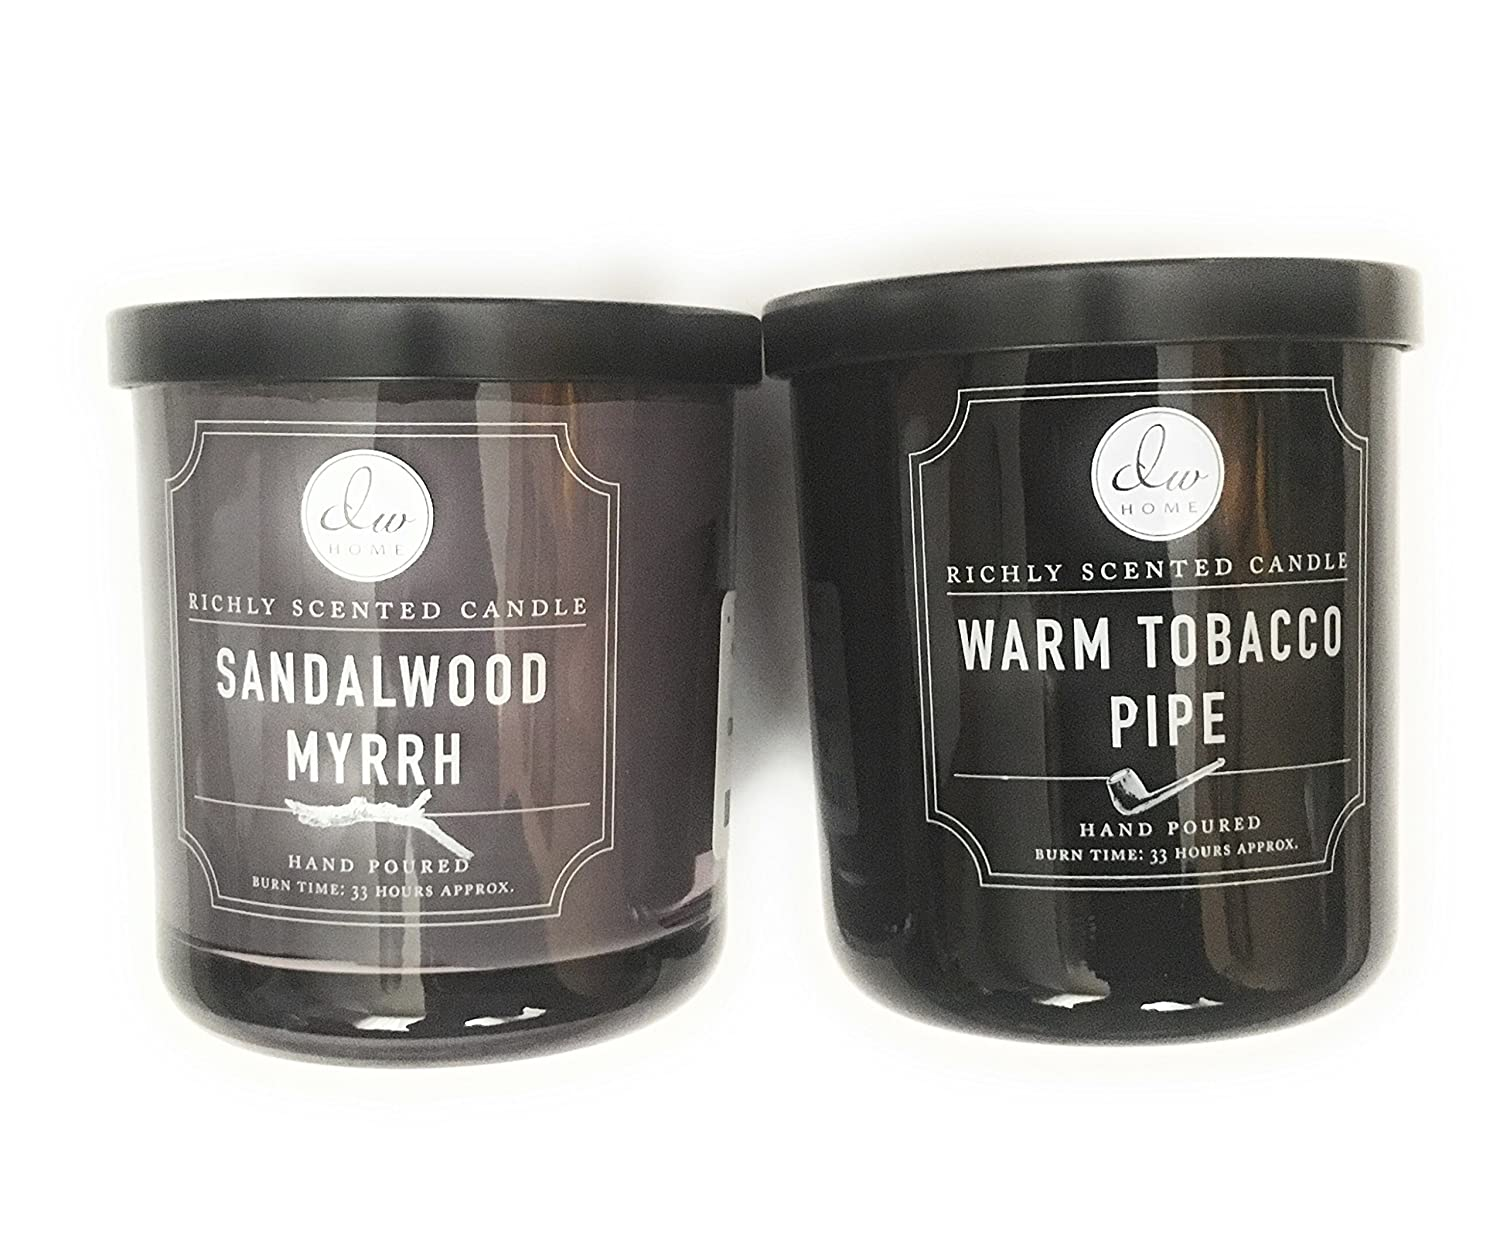 DW Home Candle Bundle with a Warm Tobacco Pipe (9.69oz) Candle and a Sandalwood and Myrrh (9.69oz)Candle (2 items)